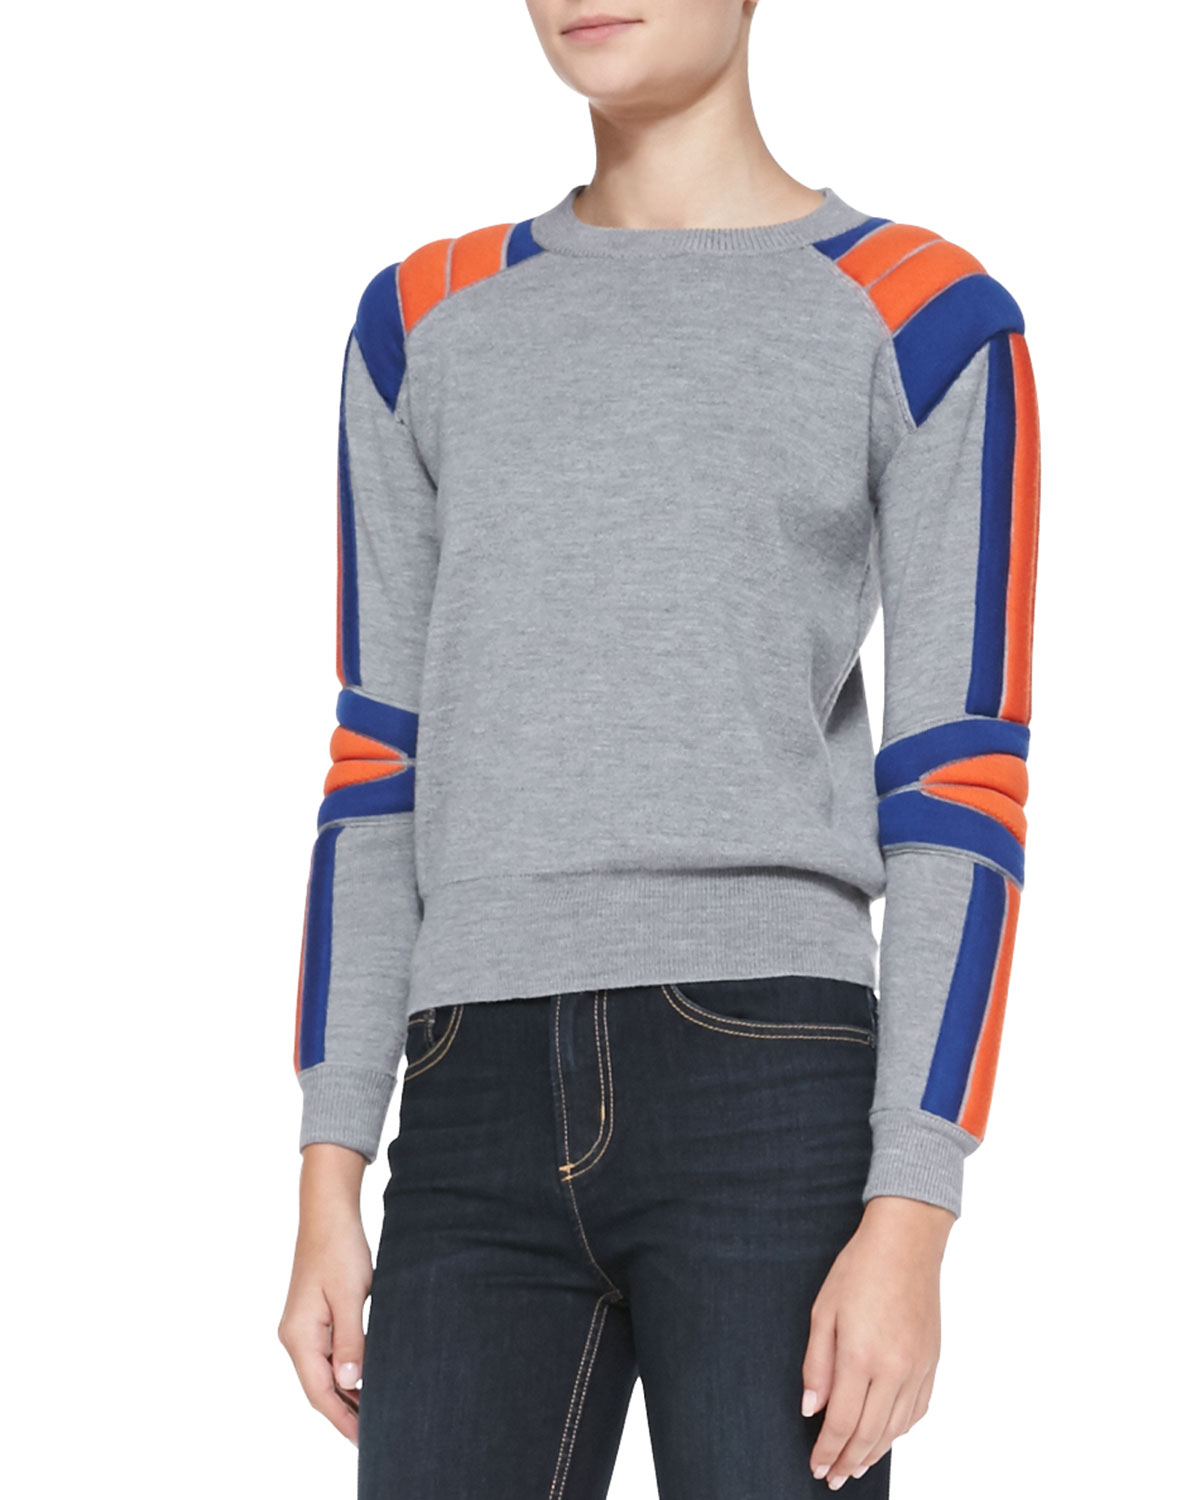 marc by marc jacobs grady wool crewneck sweater in gray lyst. Black Bedroom Furniture Sets. Home Design Ideas